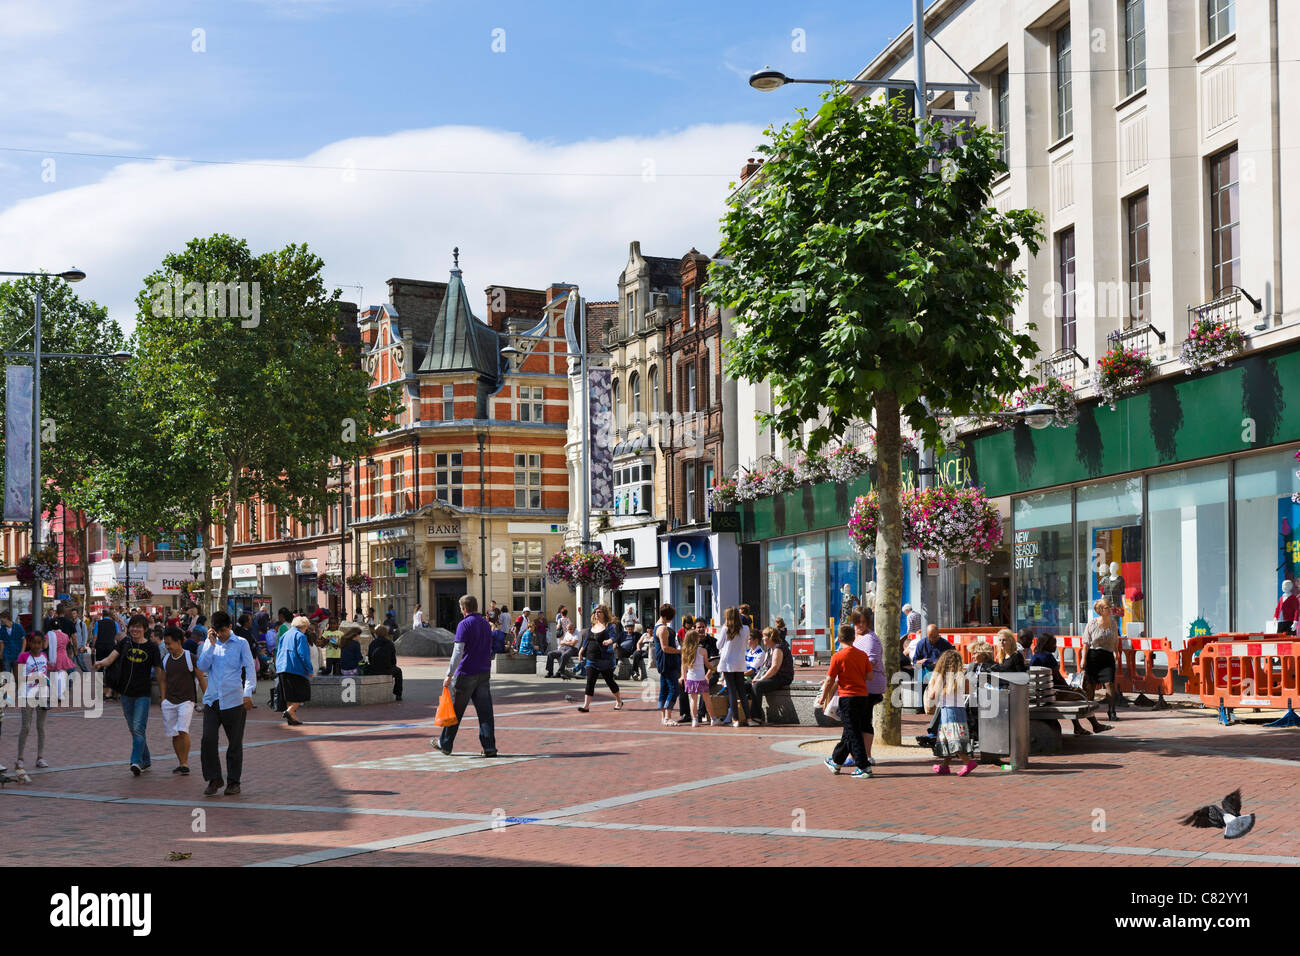 Shops on Broad Street (the main shopping area) in the city centre, Reading, Berkshire, England, UK - Stock Image